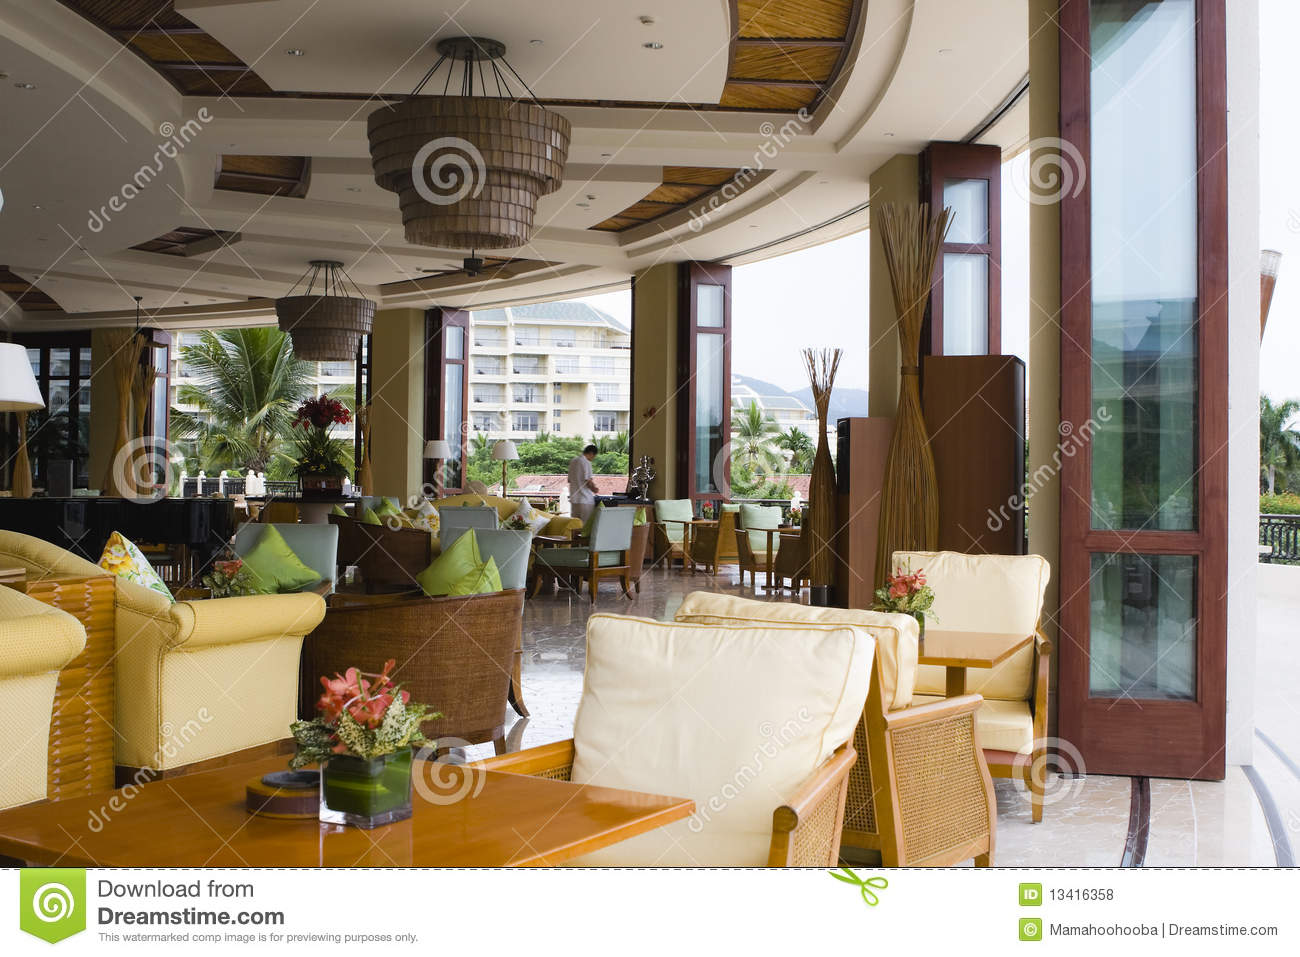 sofa and chairs chair stand test pictures hotel lobby coffee shop bar royalty free stock photos - image: 13416358